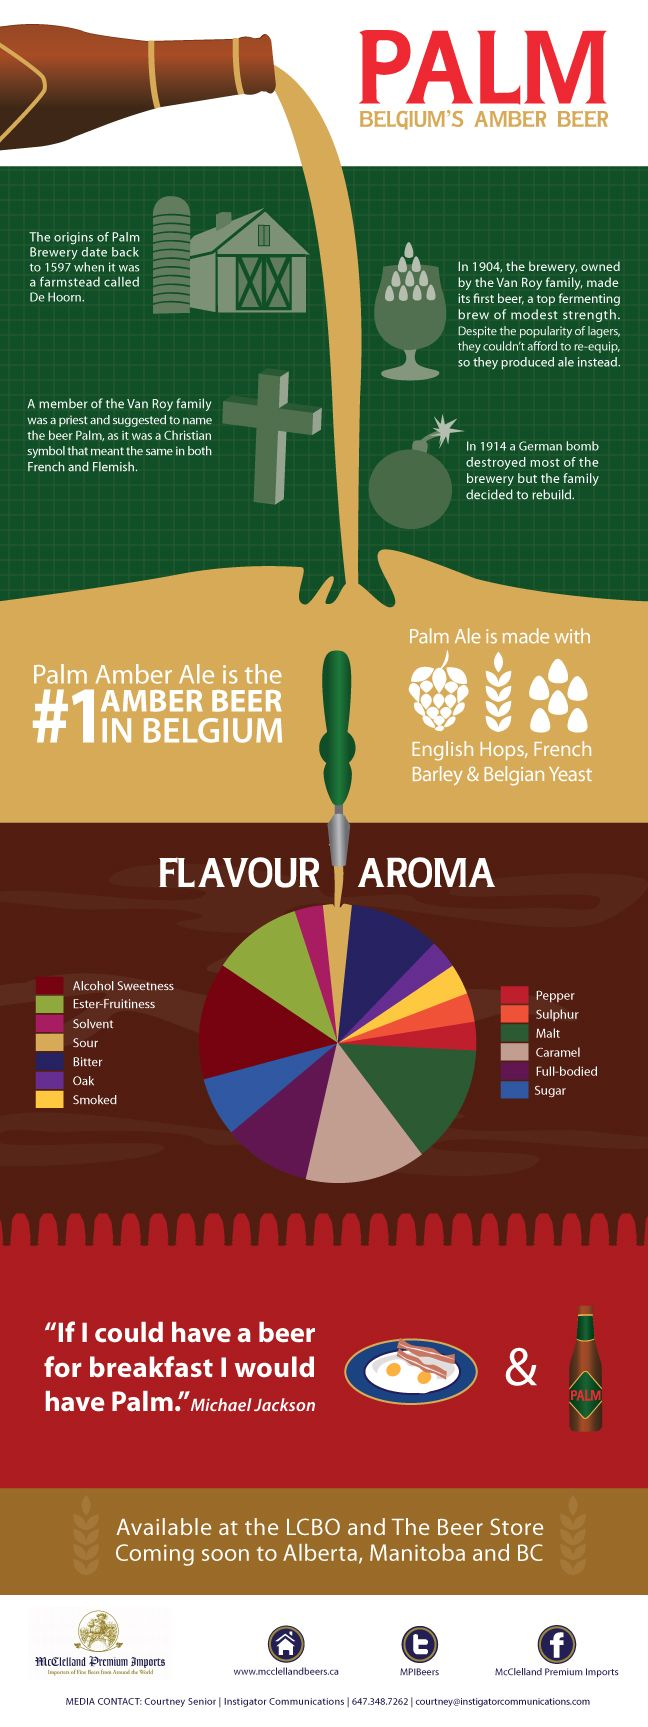 Palm Amber Ale Beer Infographic Beer Infographic Beer Facts Amber Beer